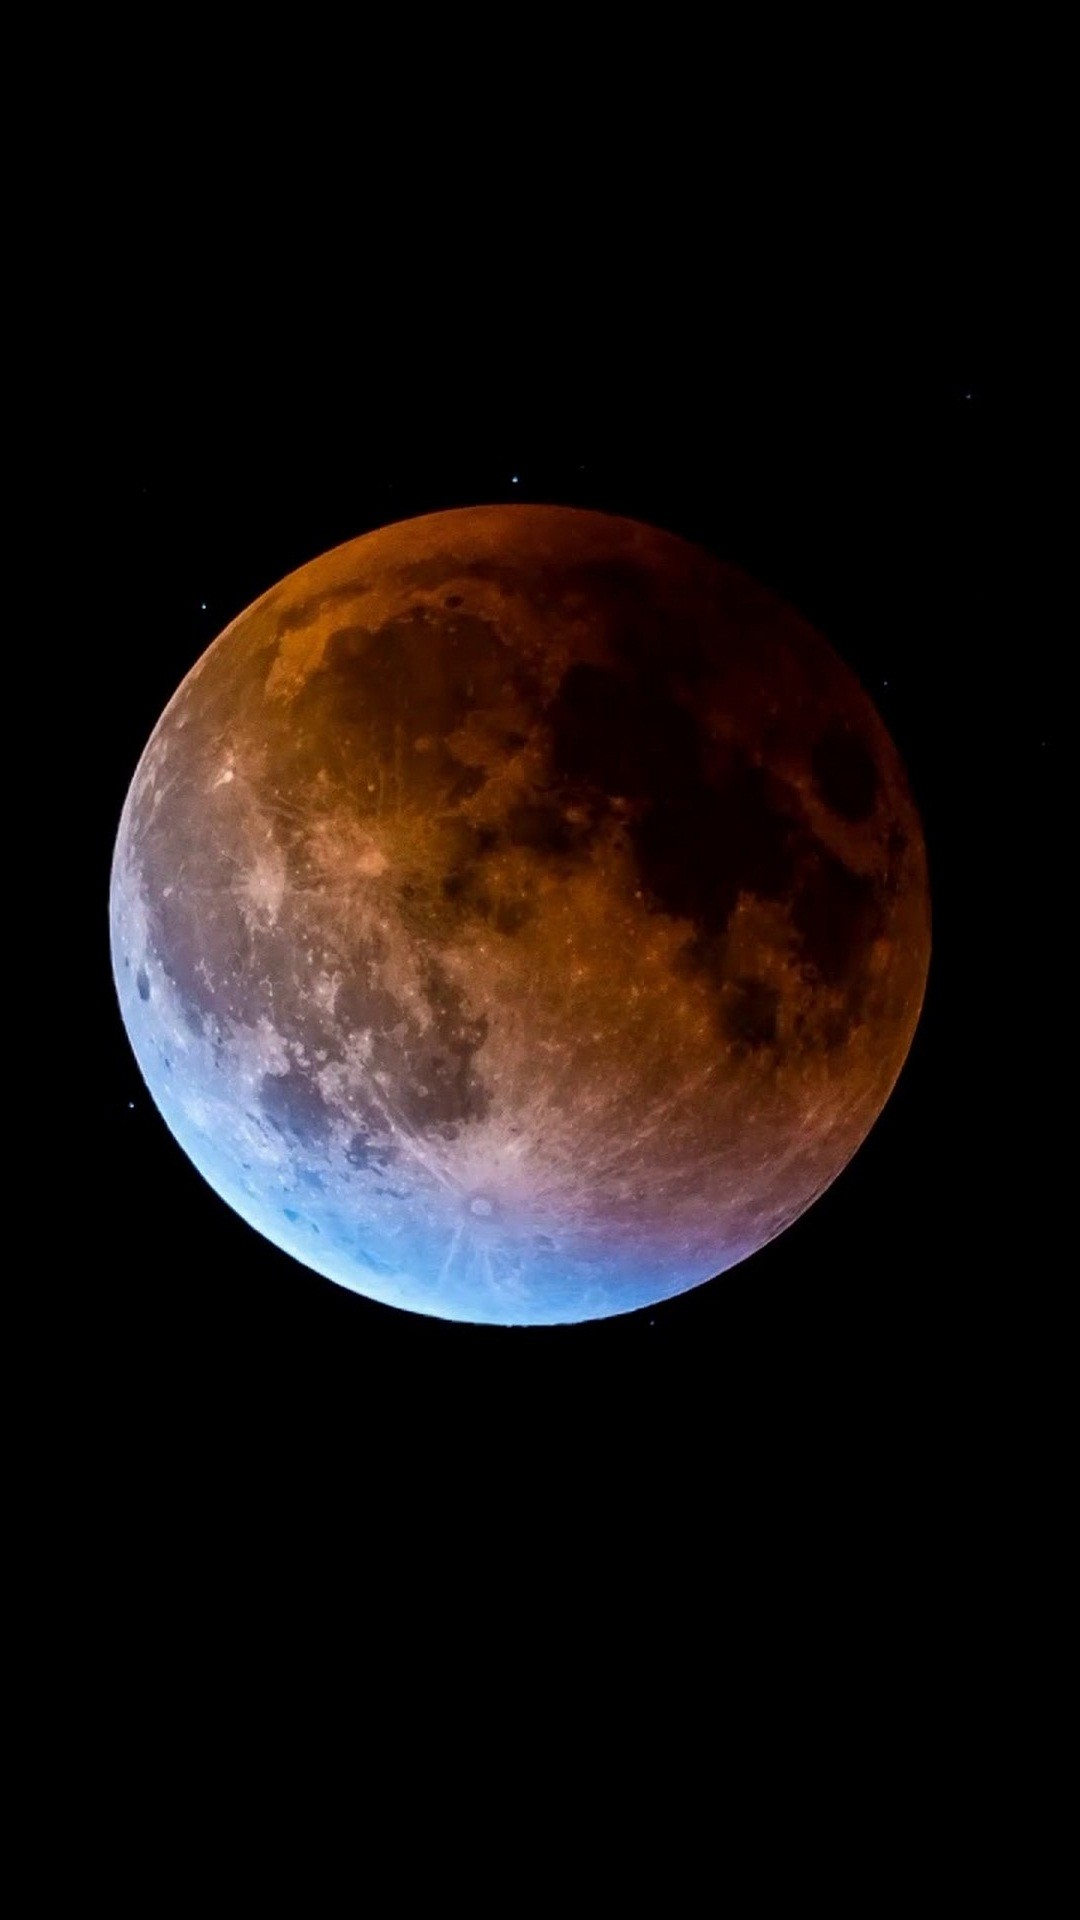 iPhone Wallpaper Super Blue Blood Moon 2020 3D iPhone Wallpaper 1080x1920